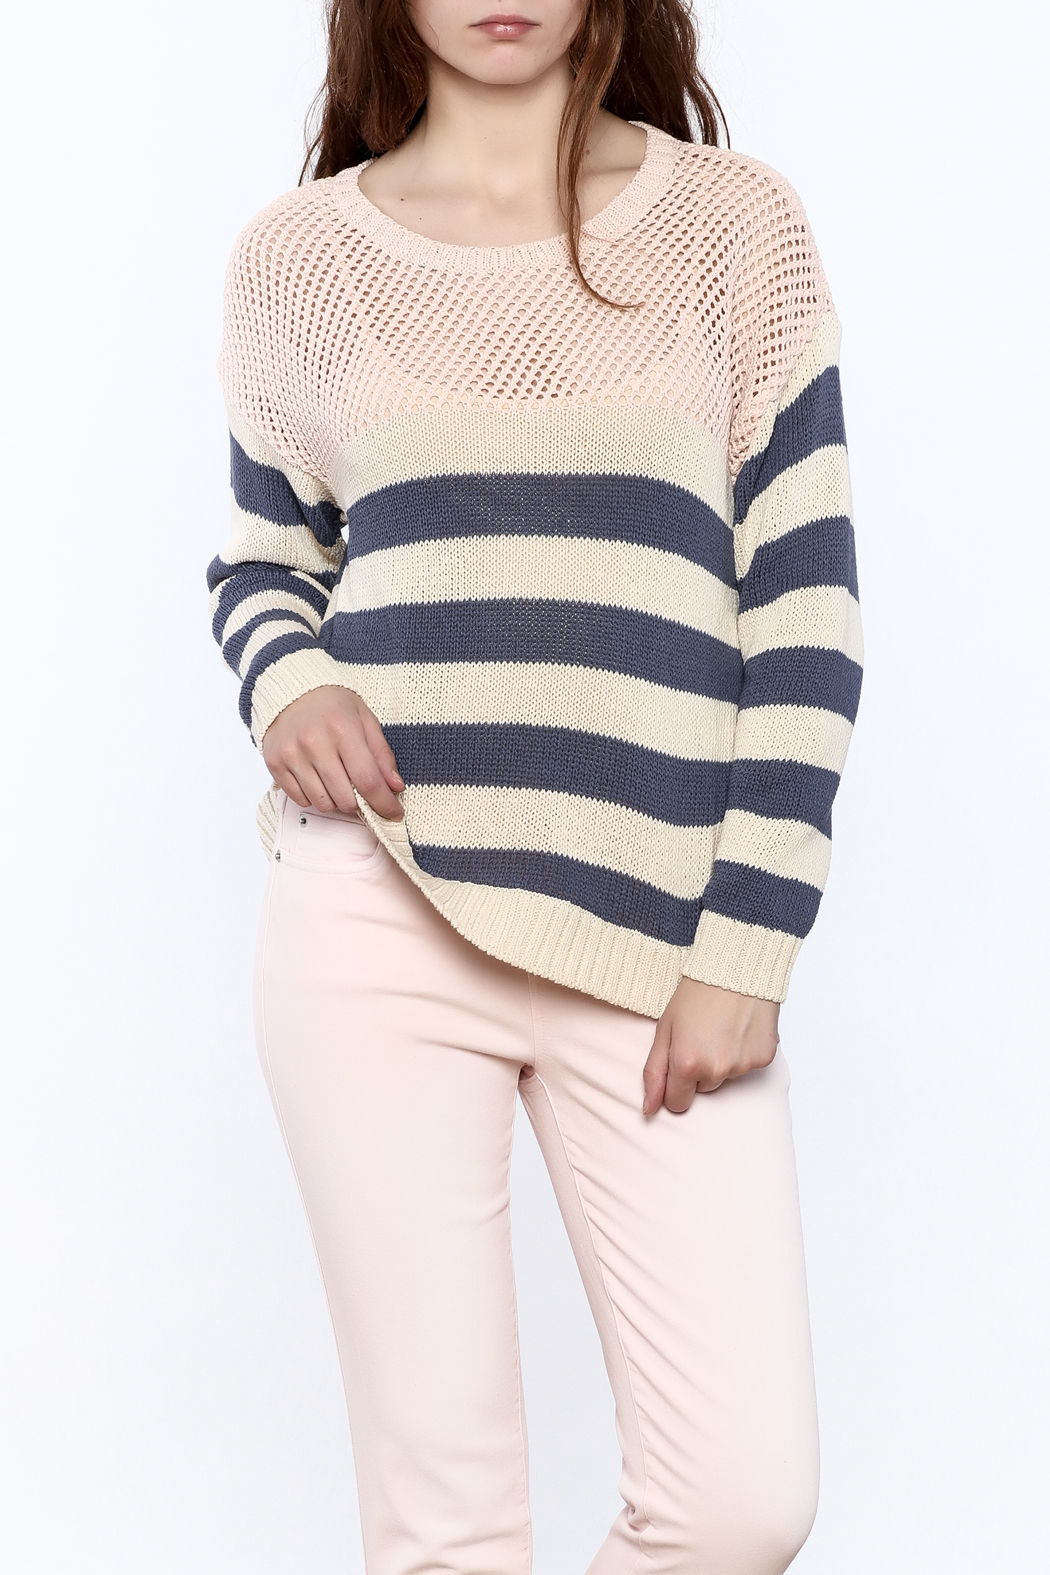 Weekend by Aldo Martins Summer Nautical Sweater - Main Image